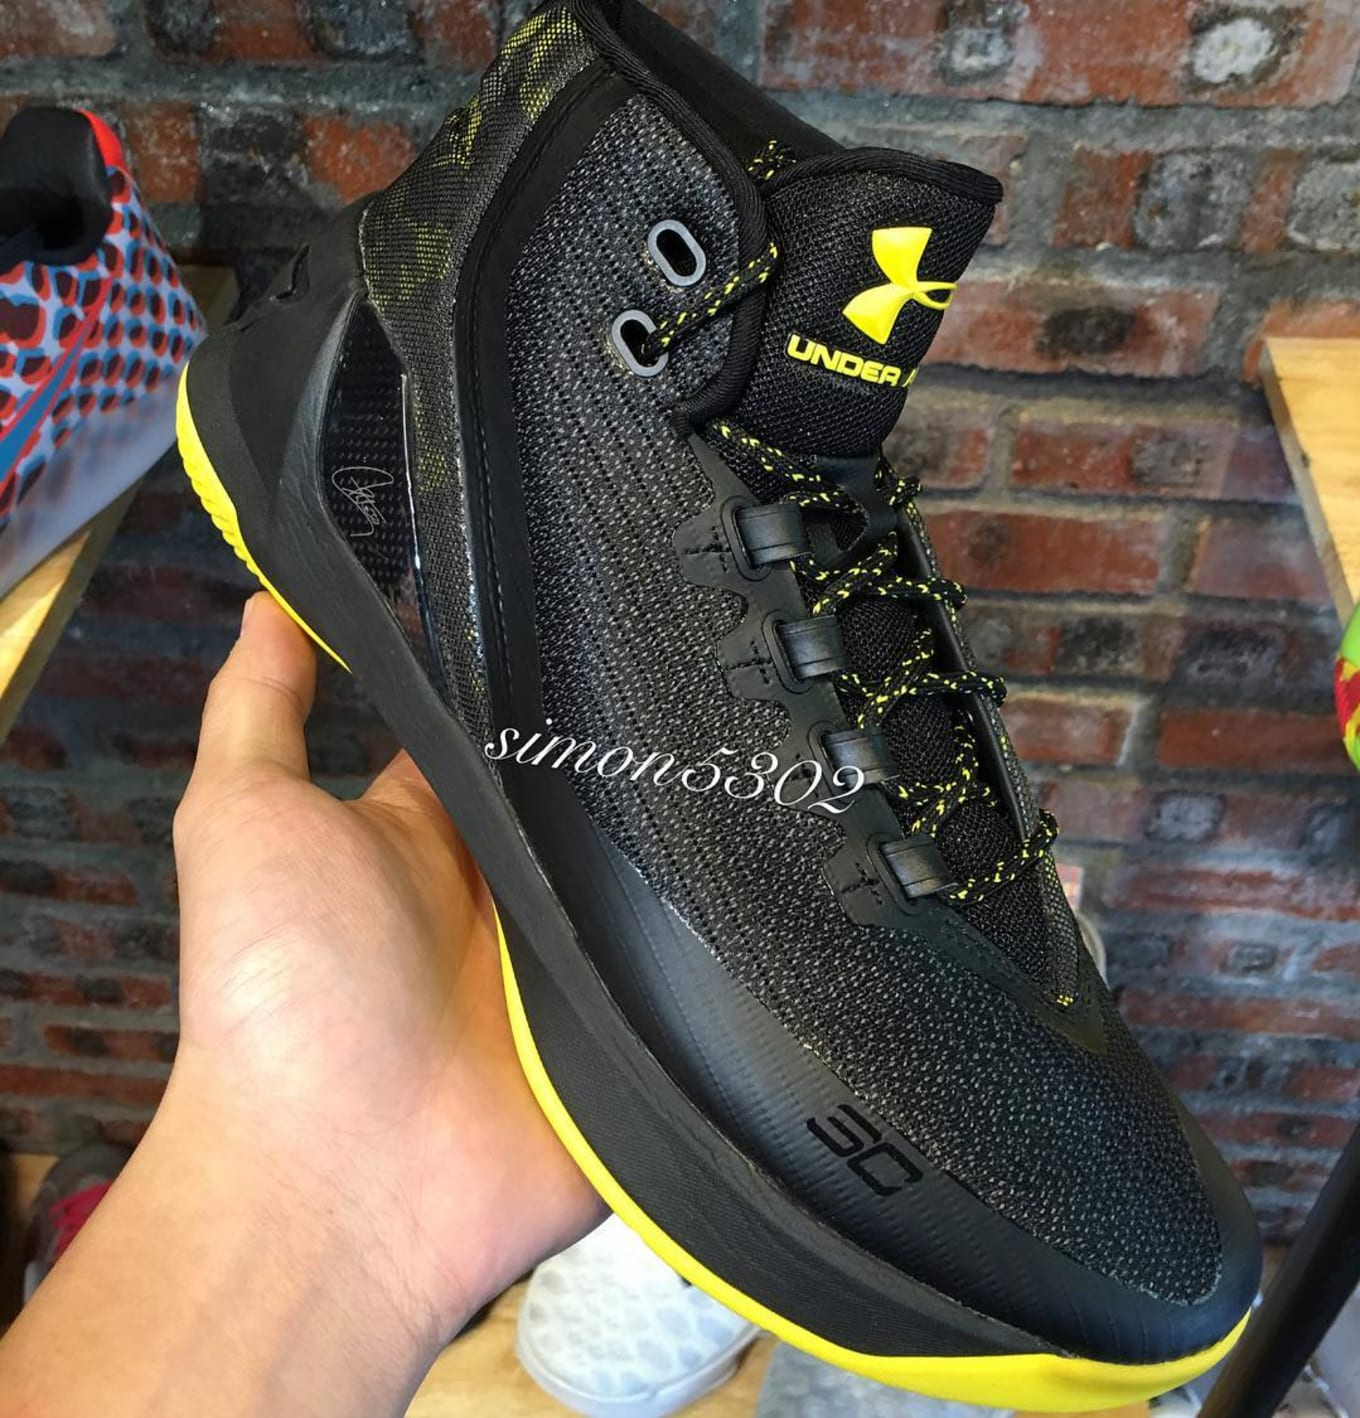 043705e2b24a Under Armour Curry 3 Black Yellow Camo Black Knight (1)